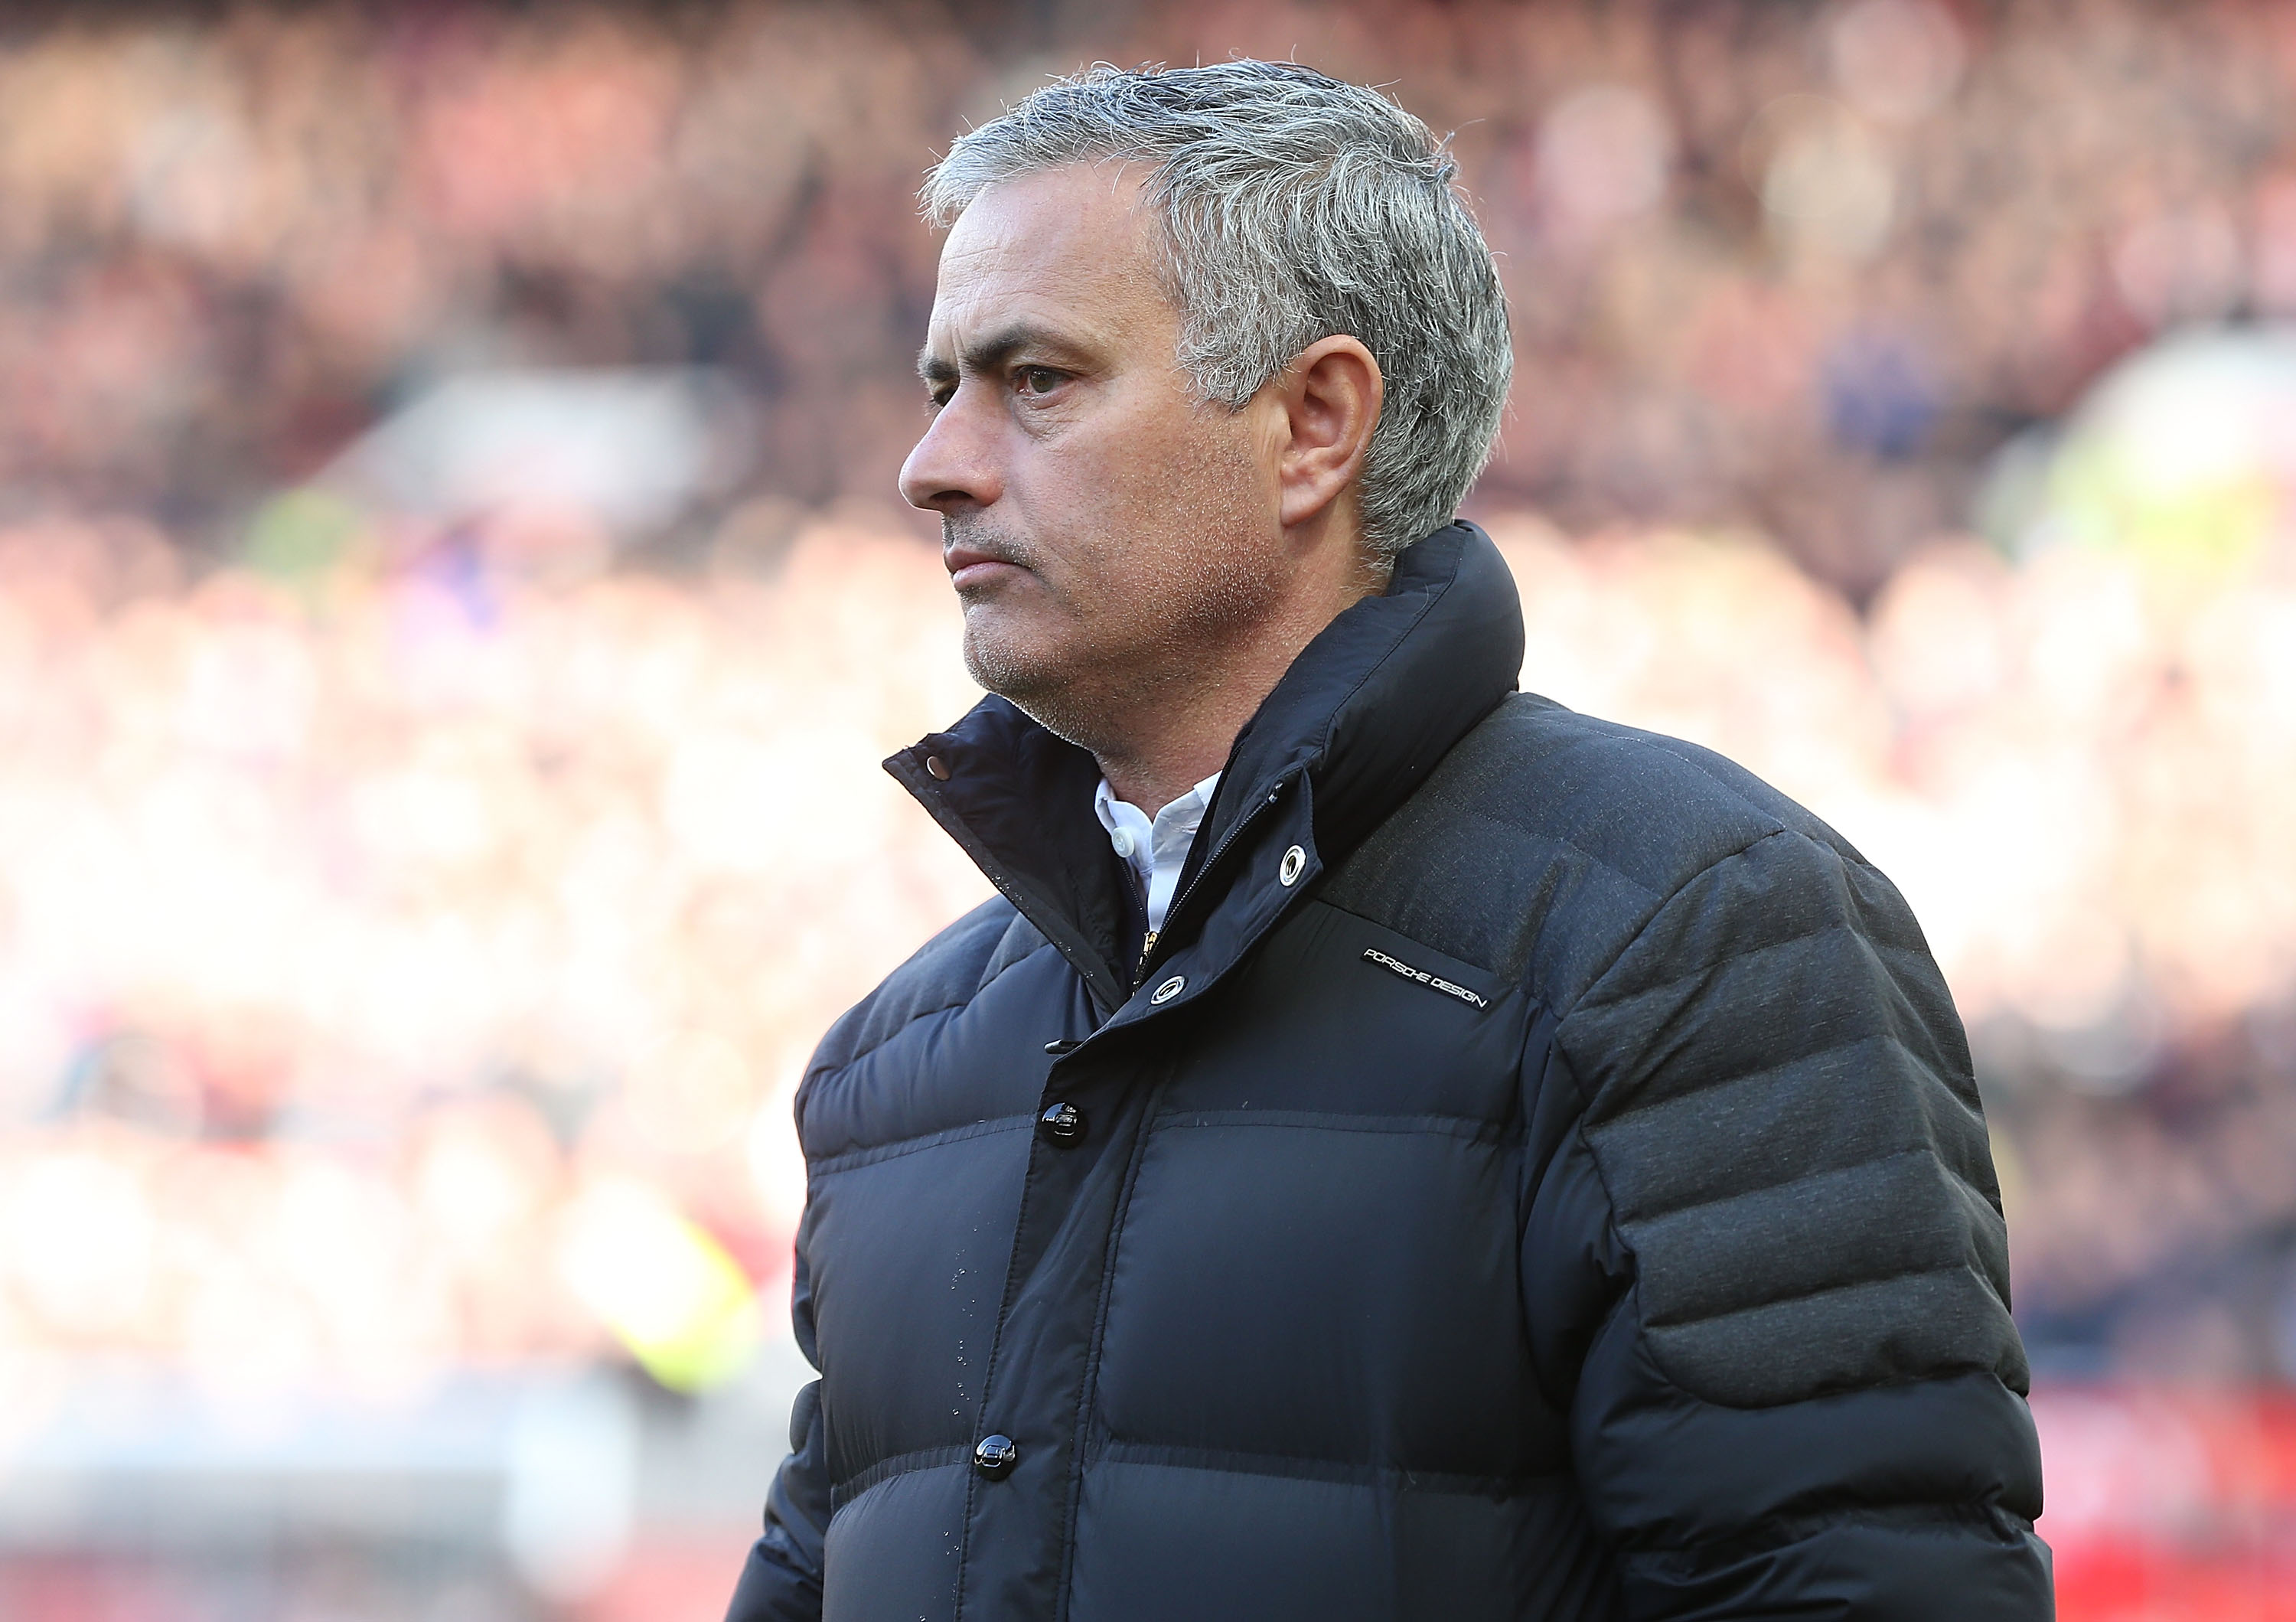 Jose Mourinho angered by Everton's public transfer interest in Manchester United's Memphis Depay